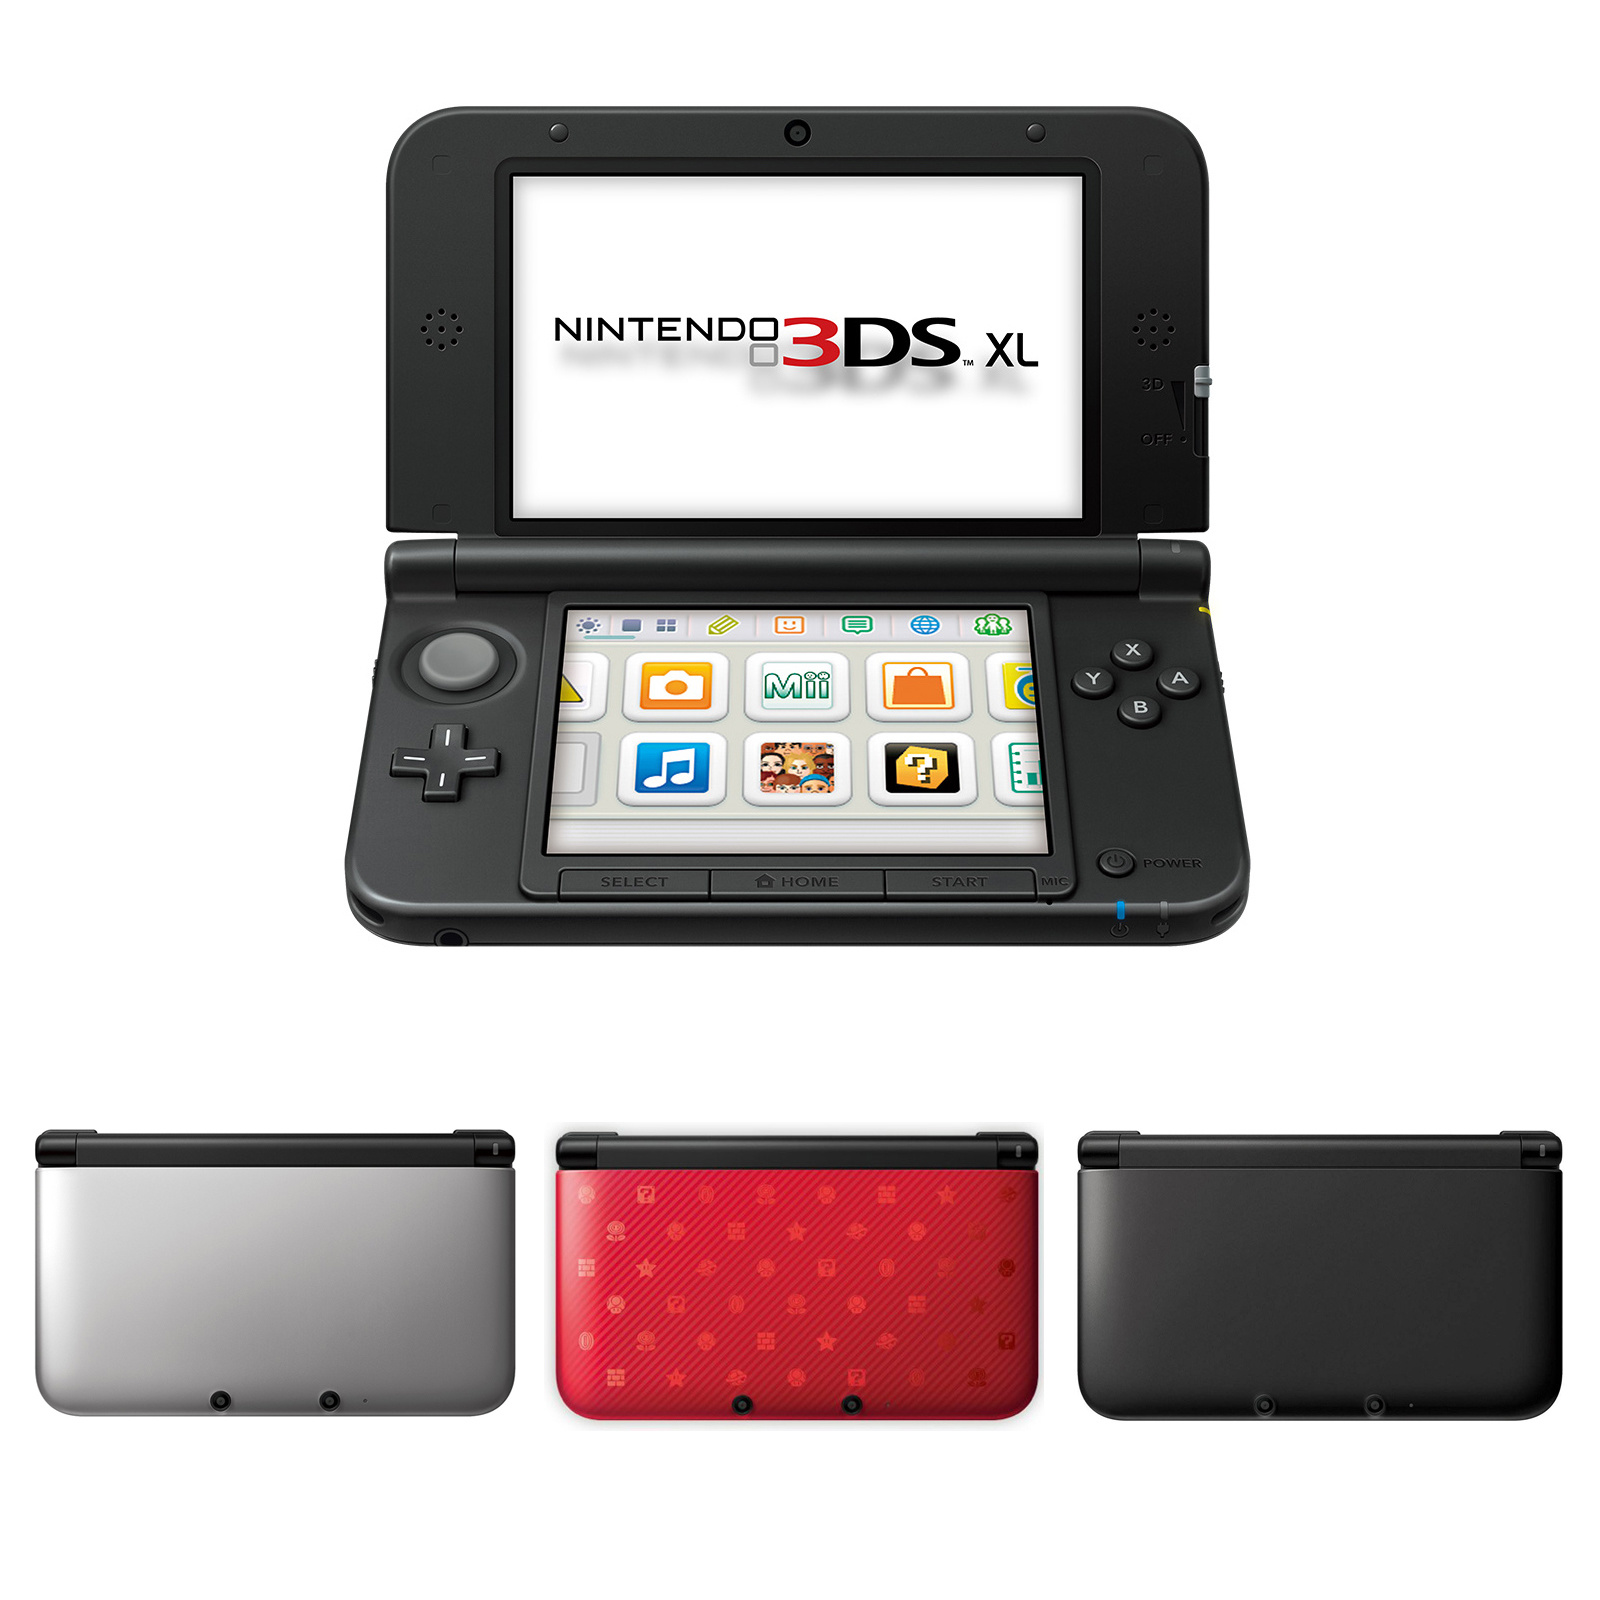 New 3 Ds Xl Metallic Black Nintendonintendo 3ds Console Handheld System With Sd Card Games Fit To Viewer Prev Next Nintendo